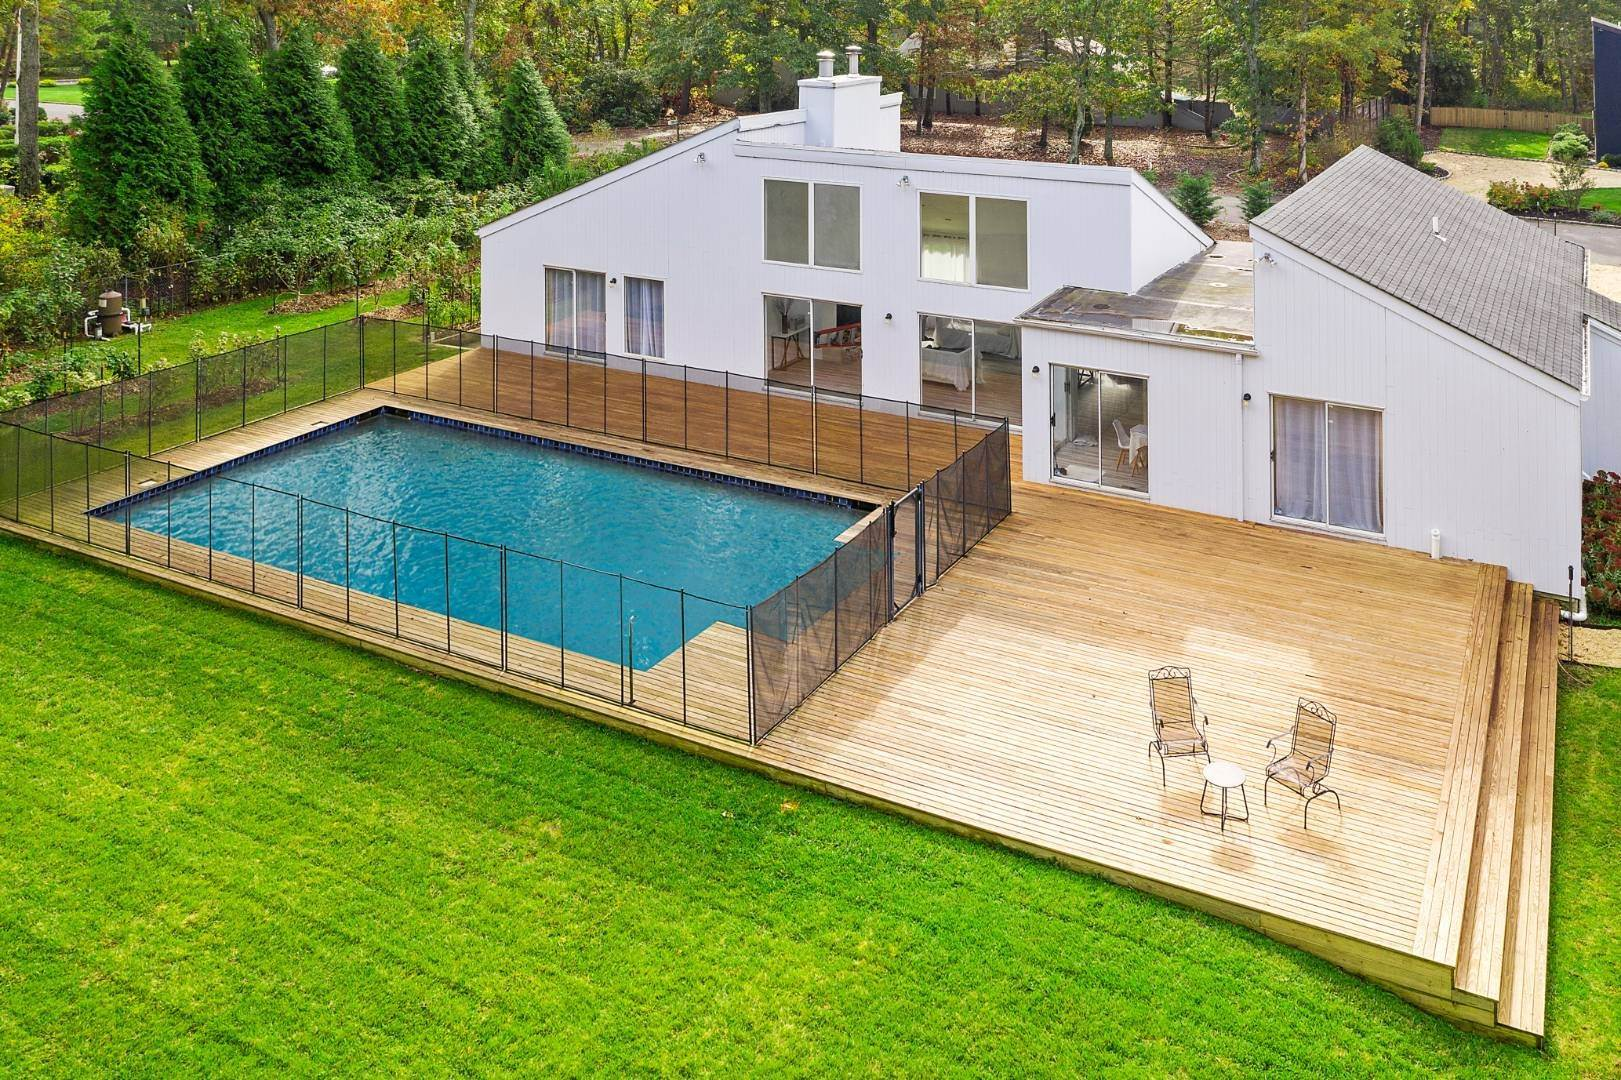 Single Family Home for Sale at Spacious East Quogue Contemporary On Sizable Property 6 The Registry, East Quogue, NY 11942